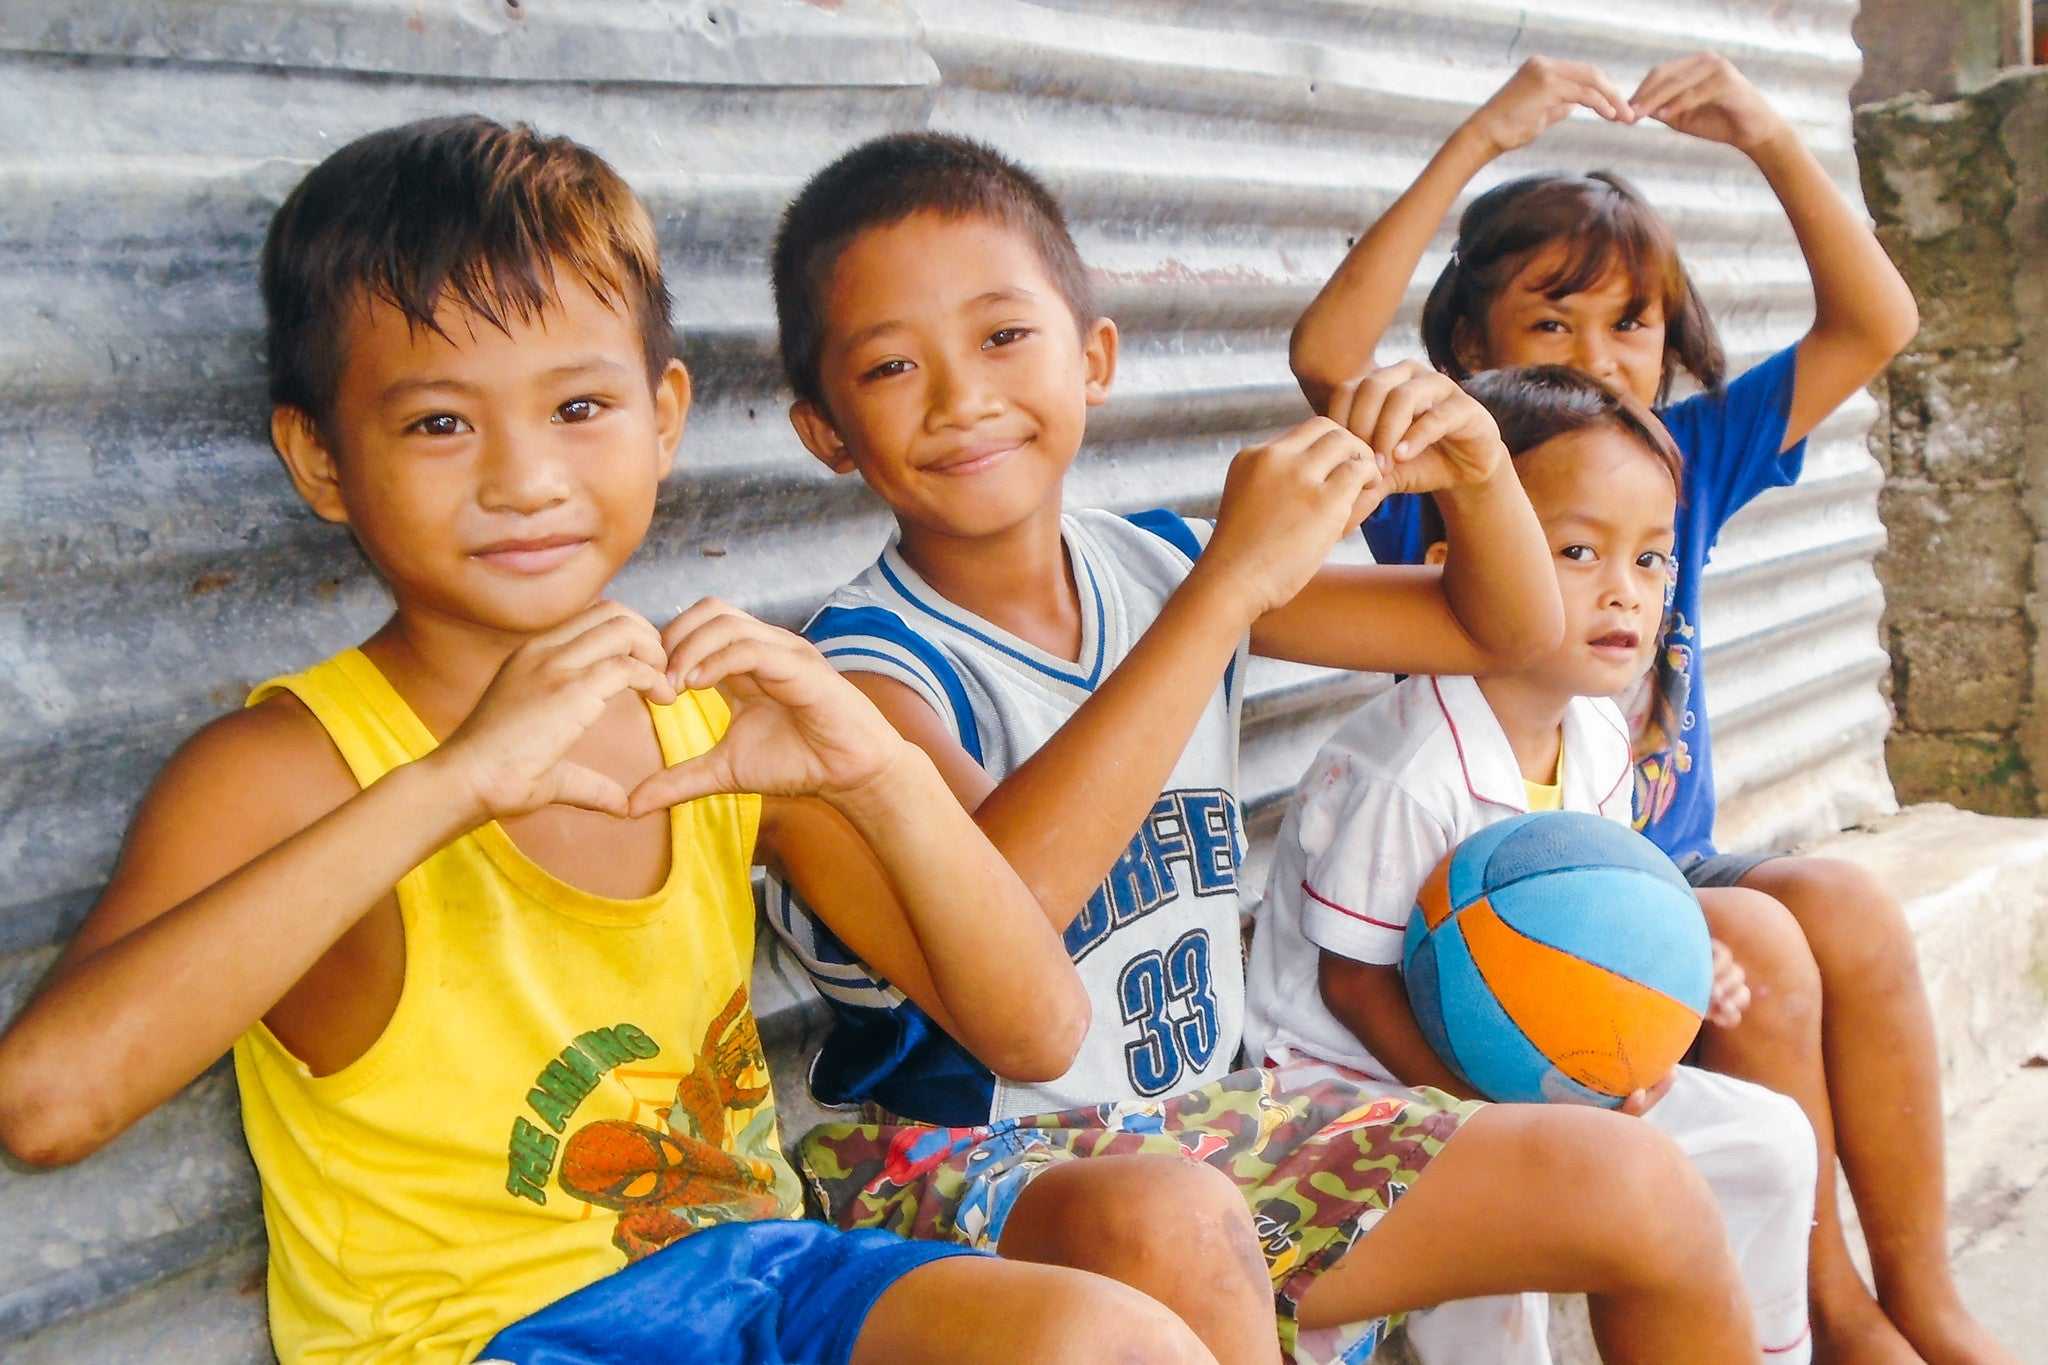 Philippine child prostitution  Manila: New 'Children's Hope Center' facility applies finishing touches,  prepares for relaunch